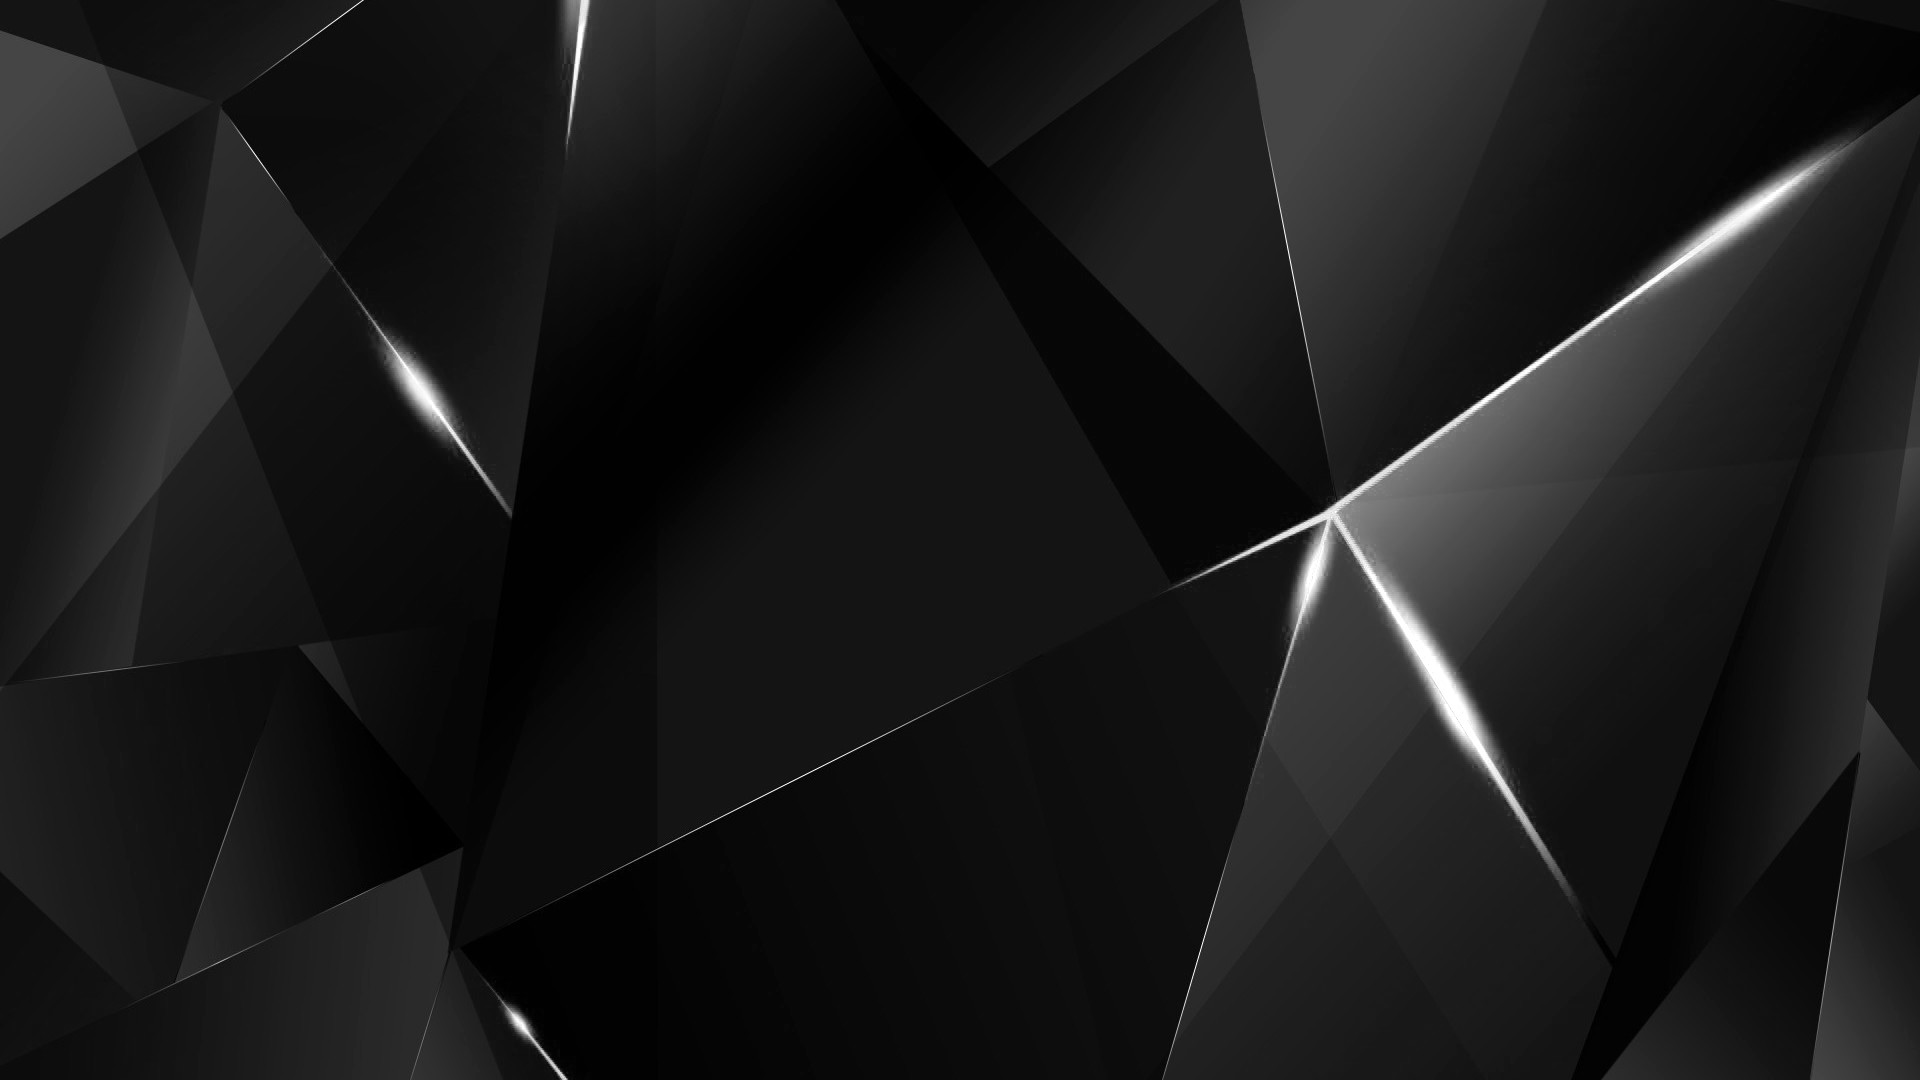 Res: 1920x1080, ... Wallpapers - White Abstract Polygons (Black BG) by kaminohunter